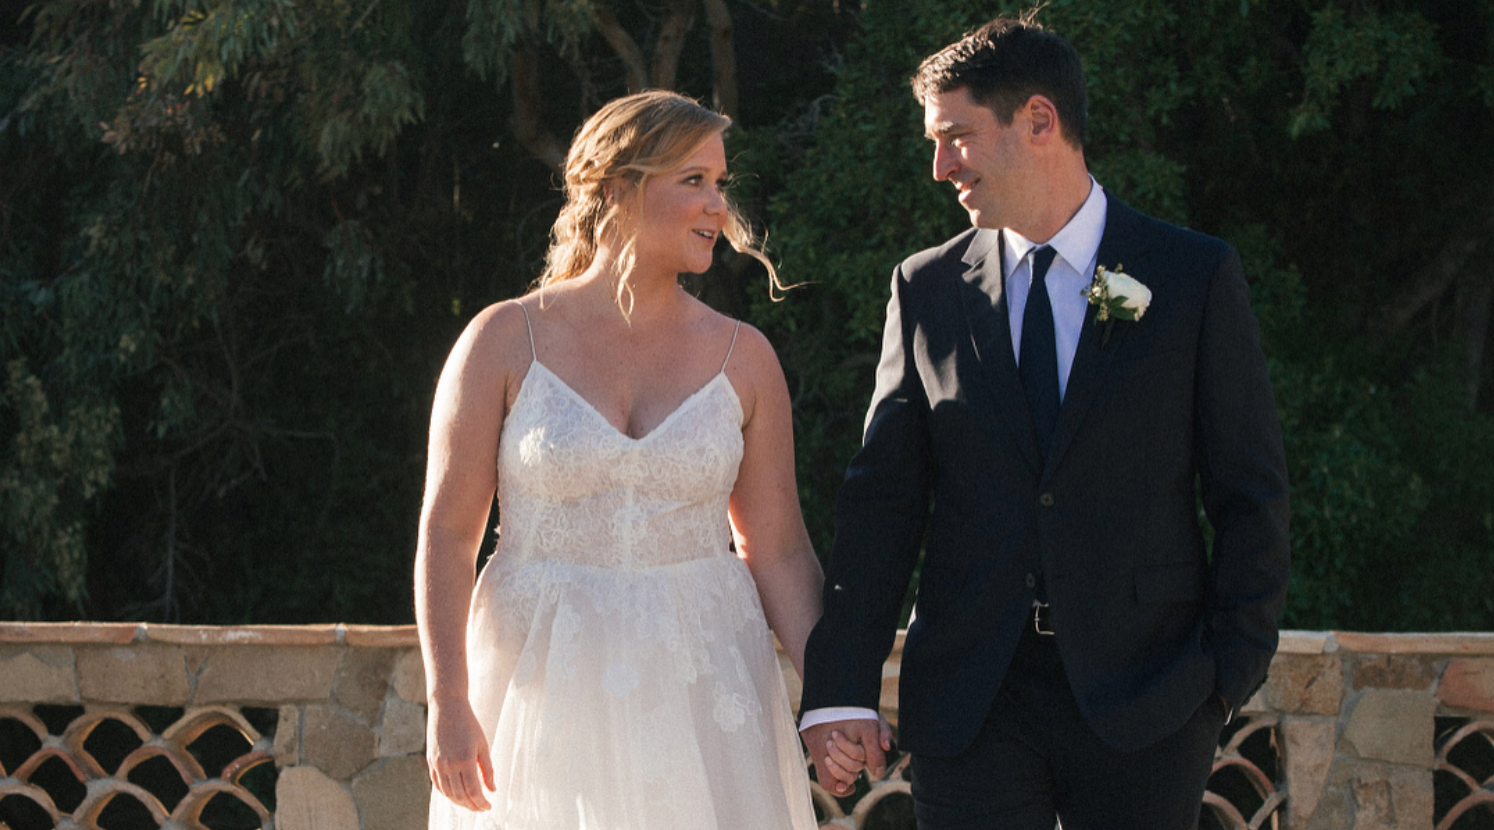 Newlywed Amy Schumer explains why she's not changing her last name